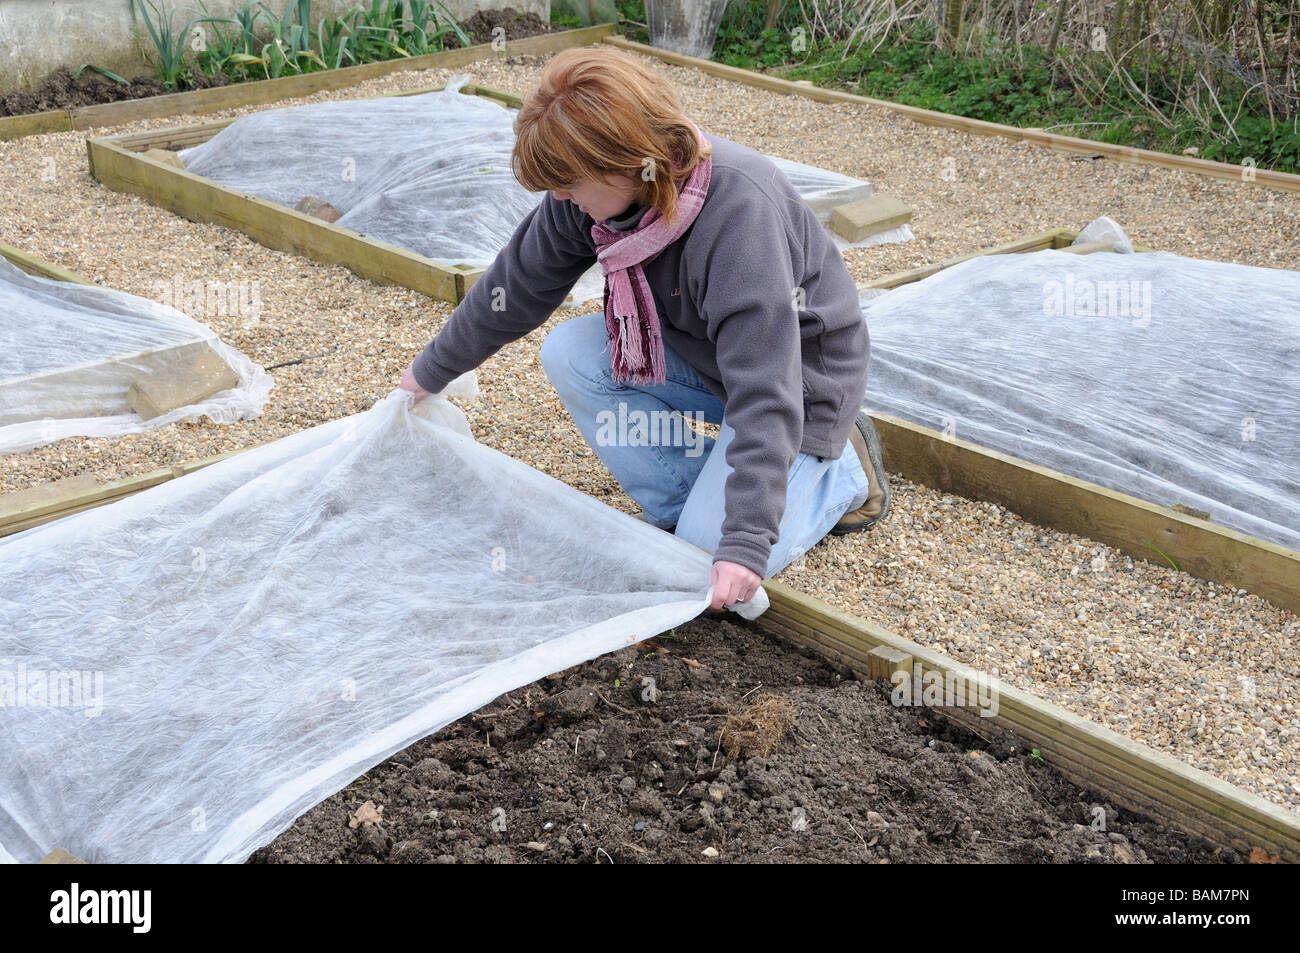 Lady gardener placing horticultural fleece on small raised beds to raised soil temperature prior to springtime sowing - Stock Image